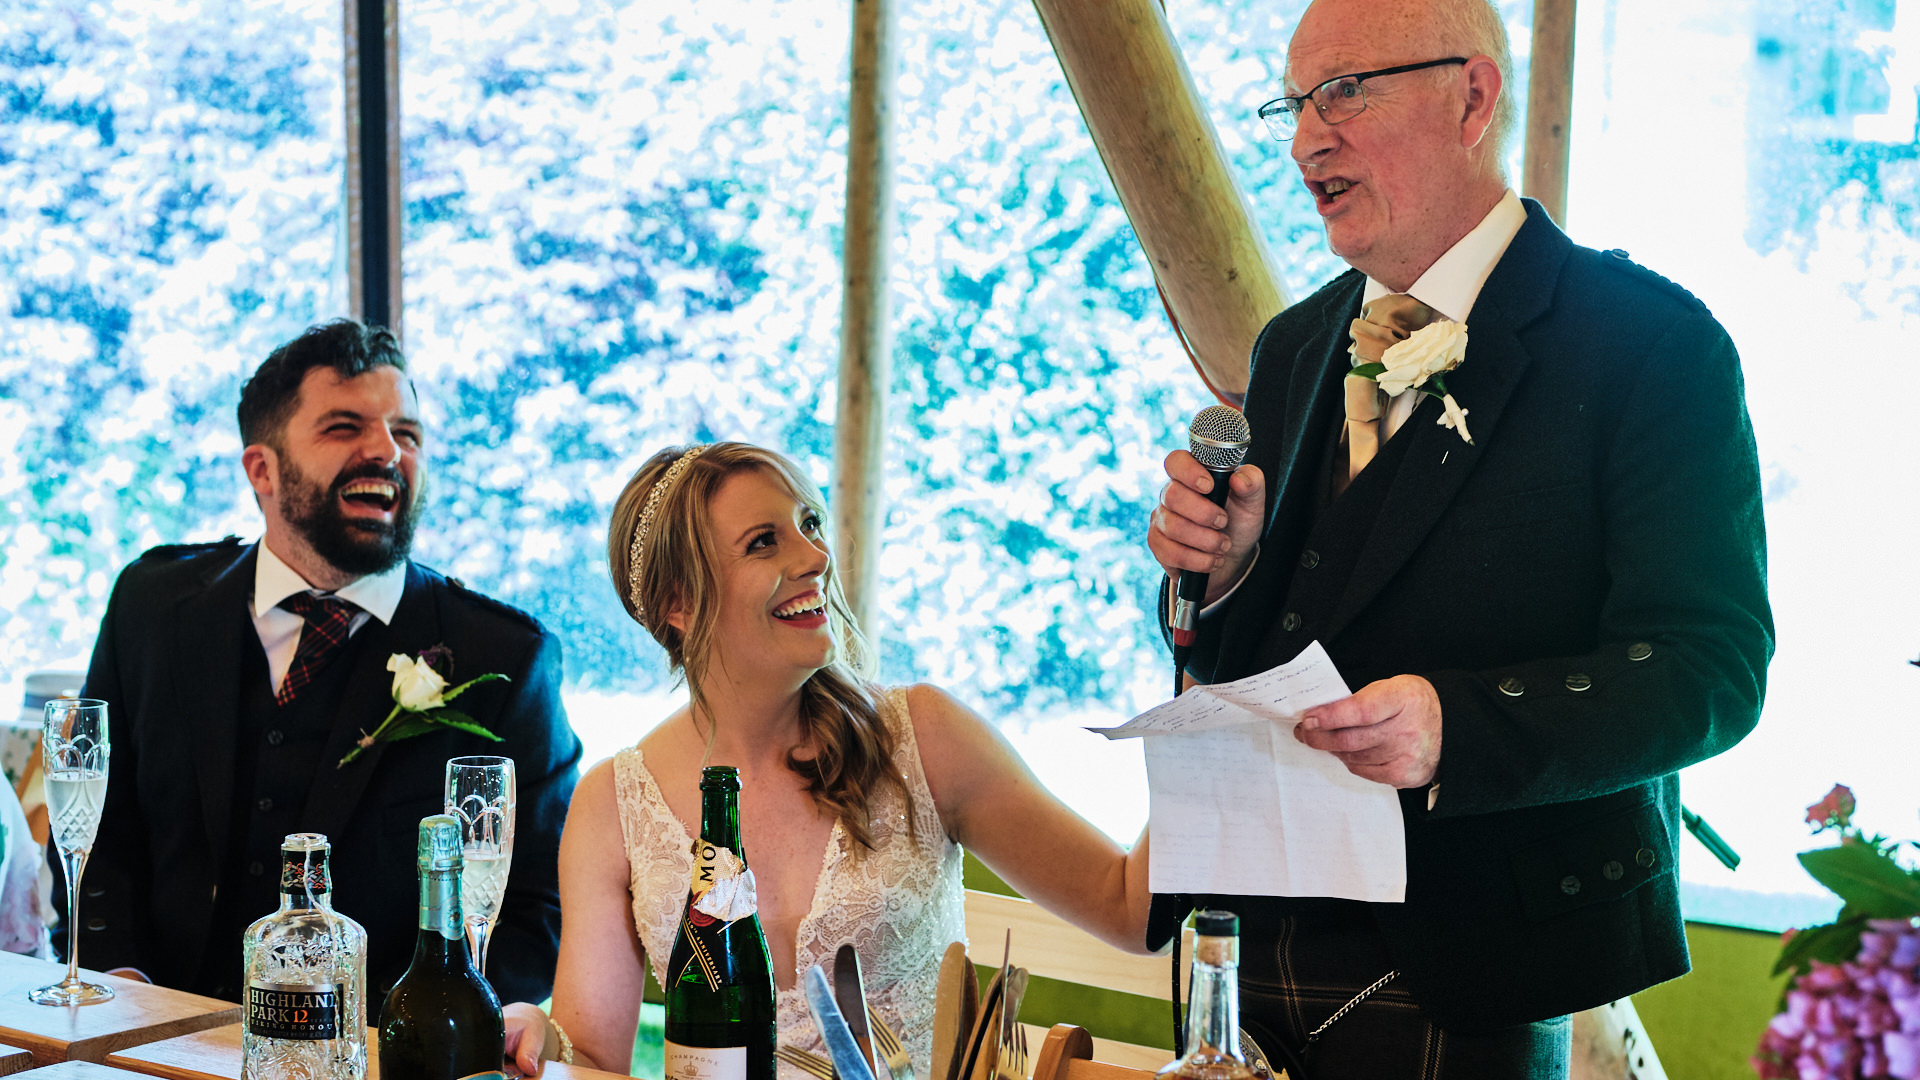 colour photograph of the father of the bride giving a speech at his daughter's wedding